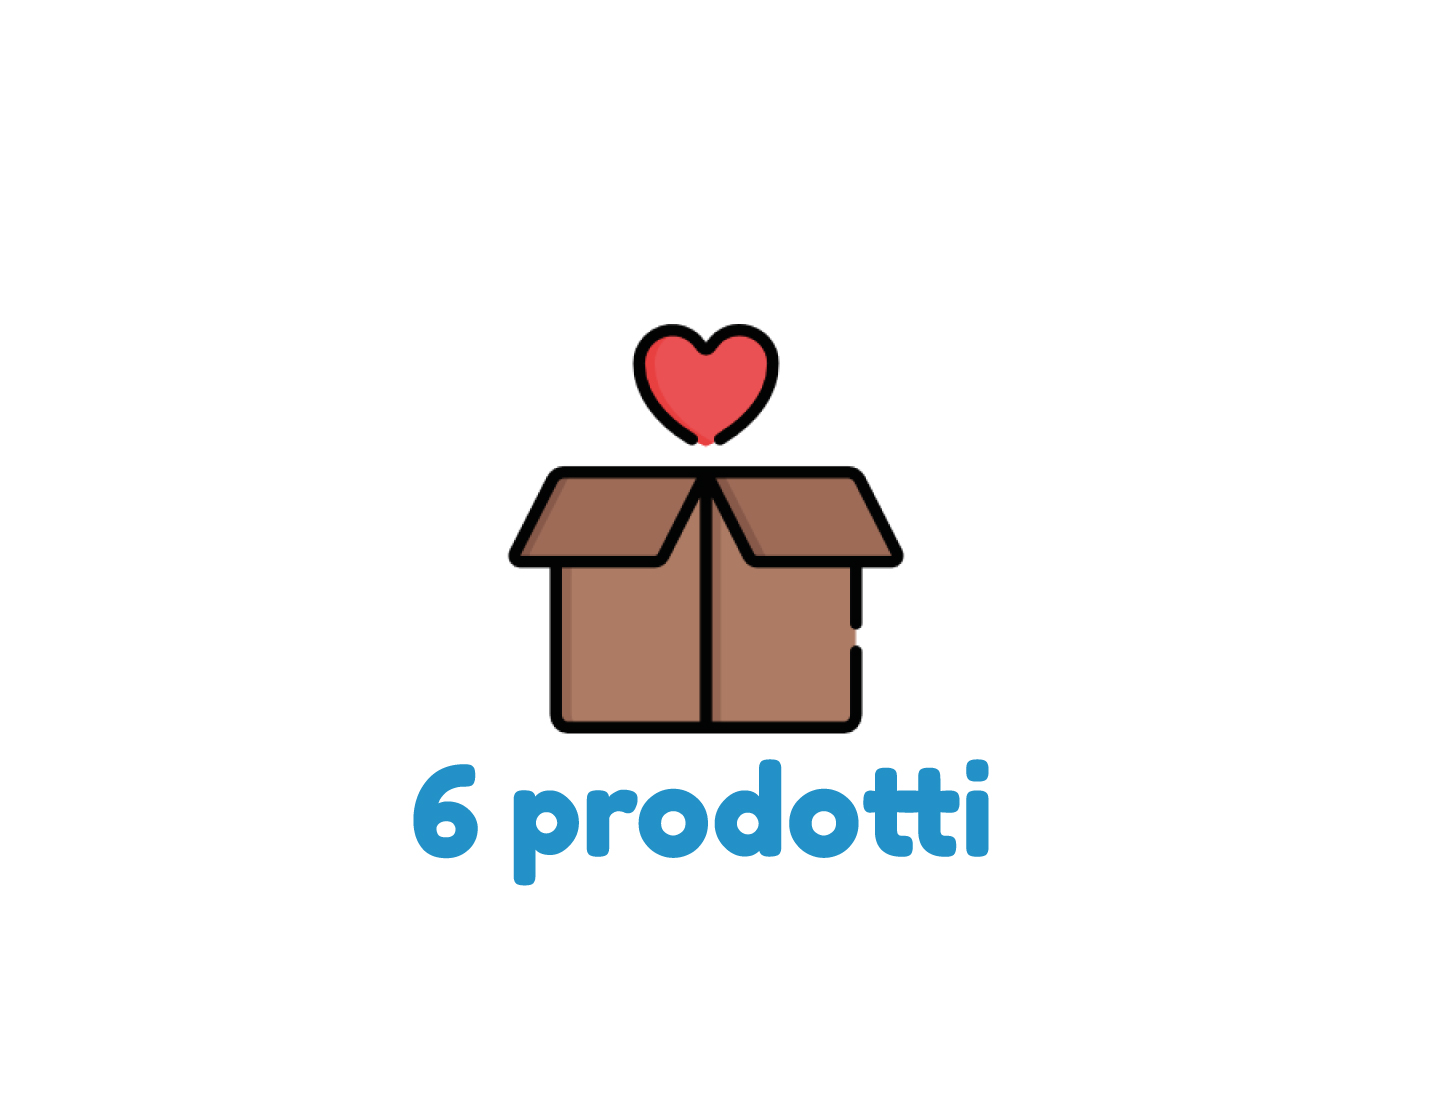 Food Box 6 Prodotti